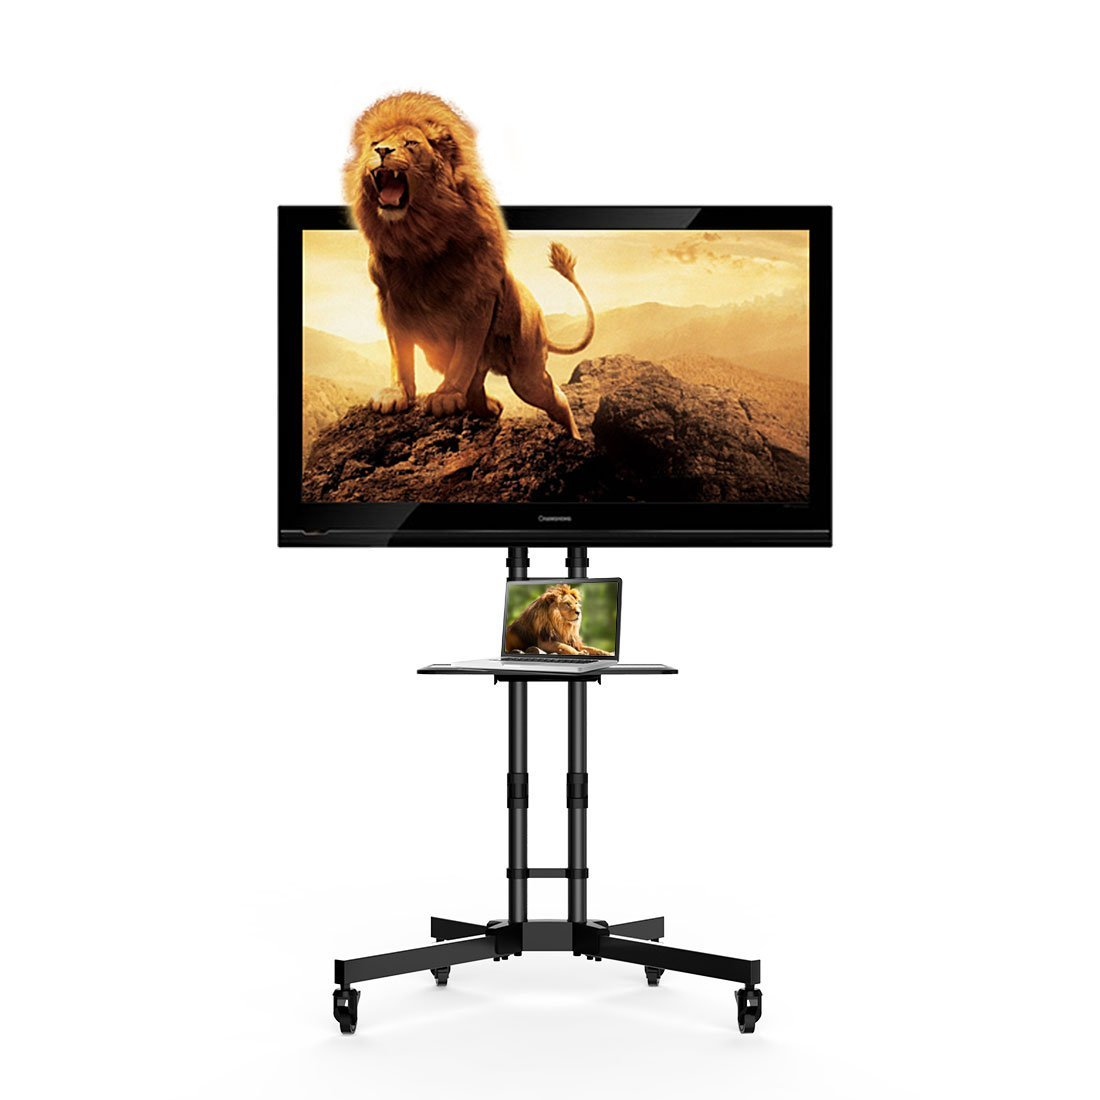 FLEXIMOUNTS C06 Mobile TV Cart Stand for 32''-65'' LCD LED Plasma Flat Panel Screen by FLEXIMOUNTS